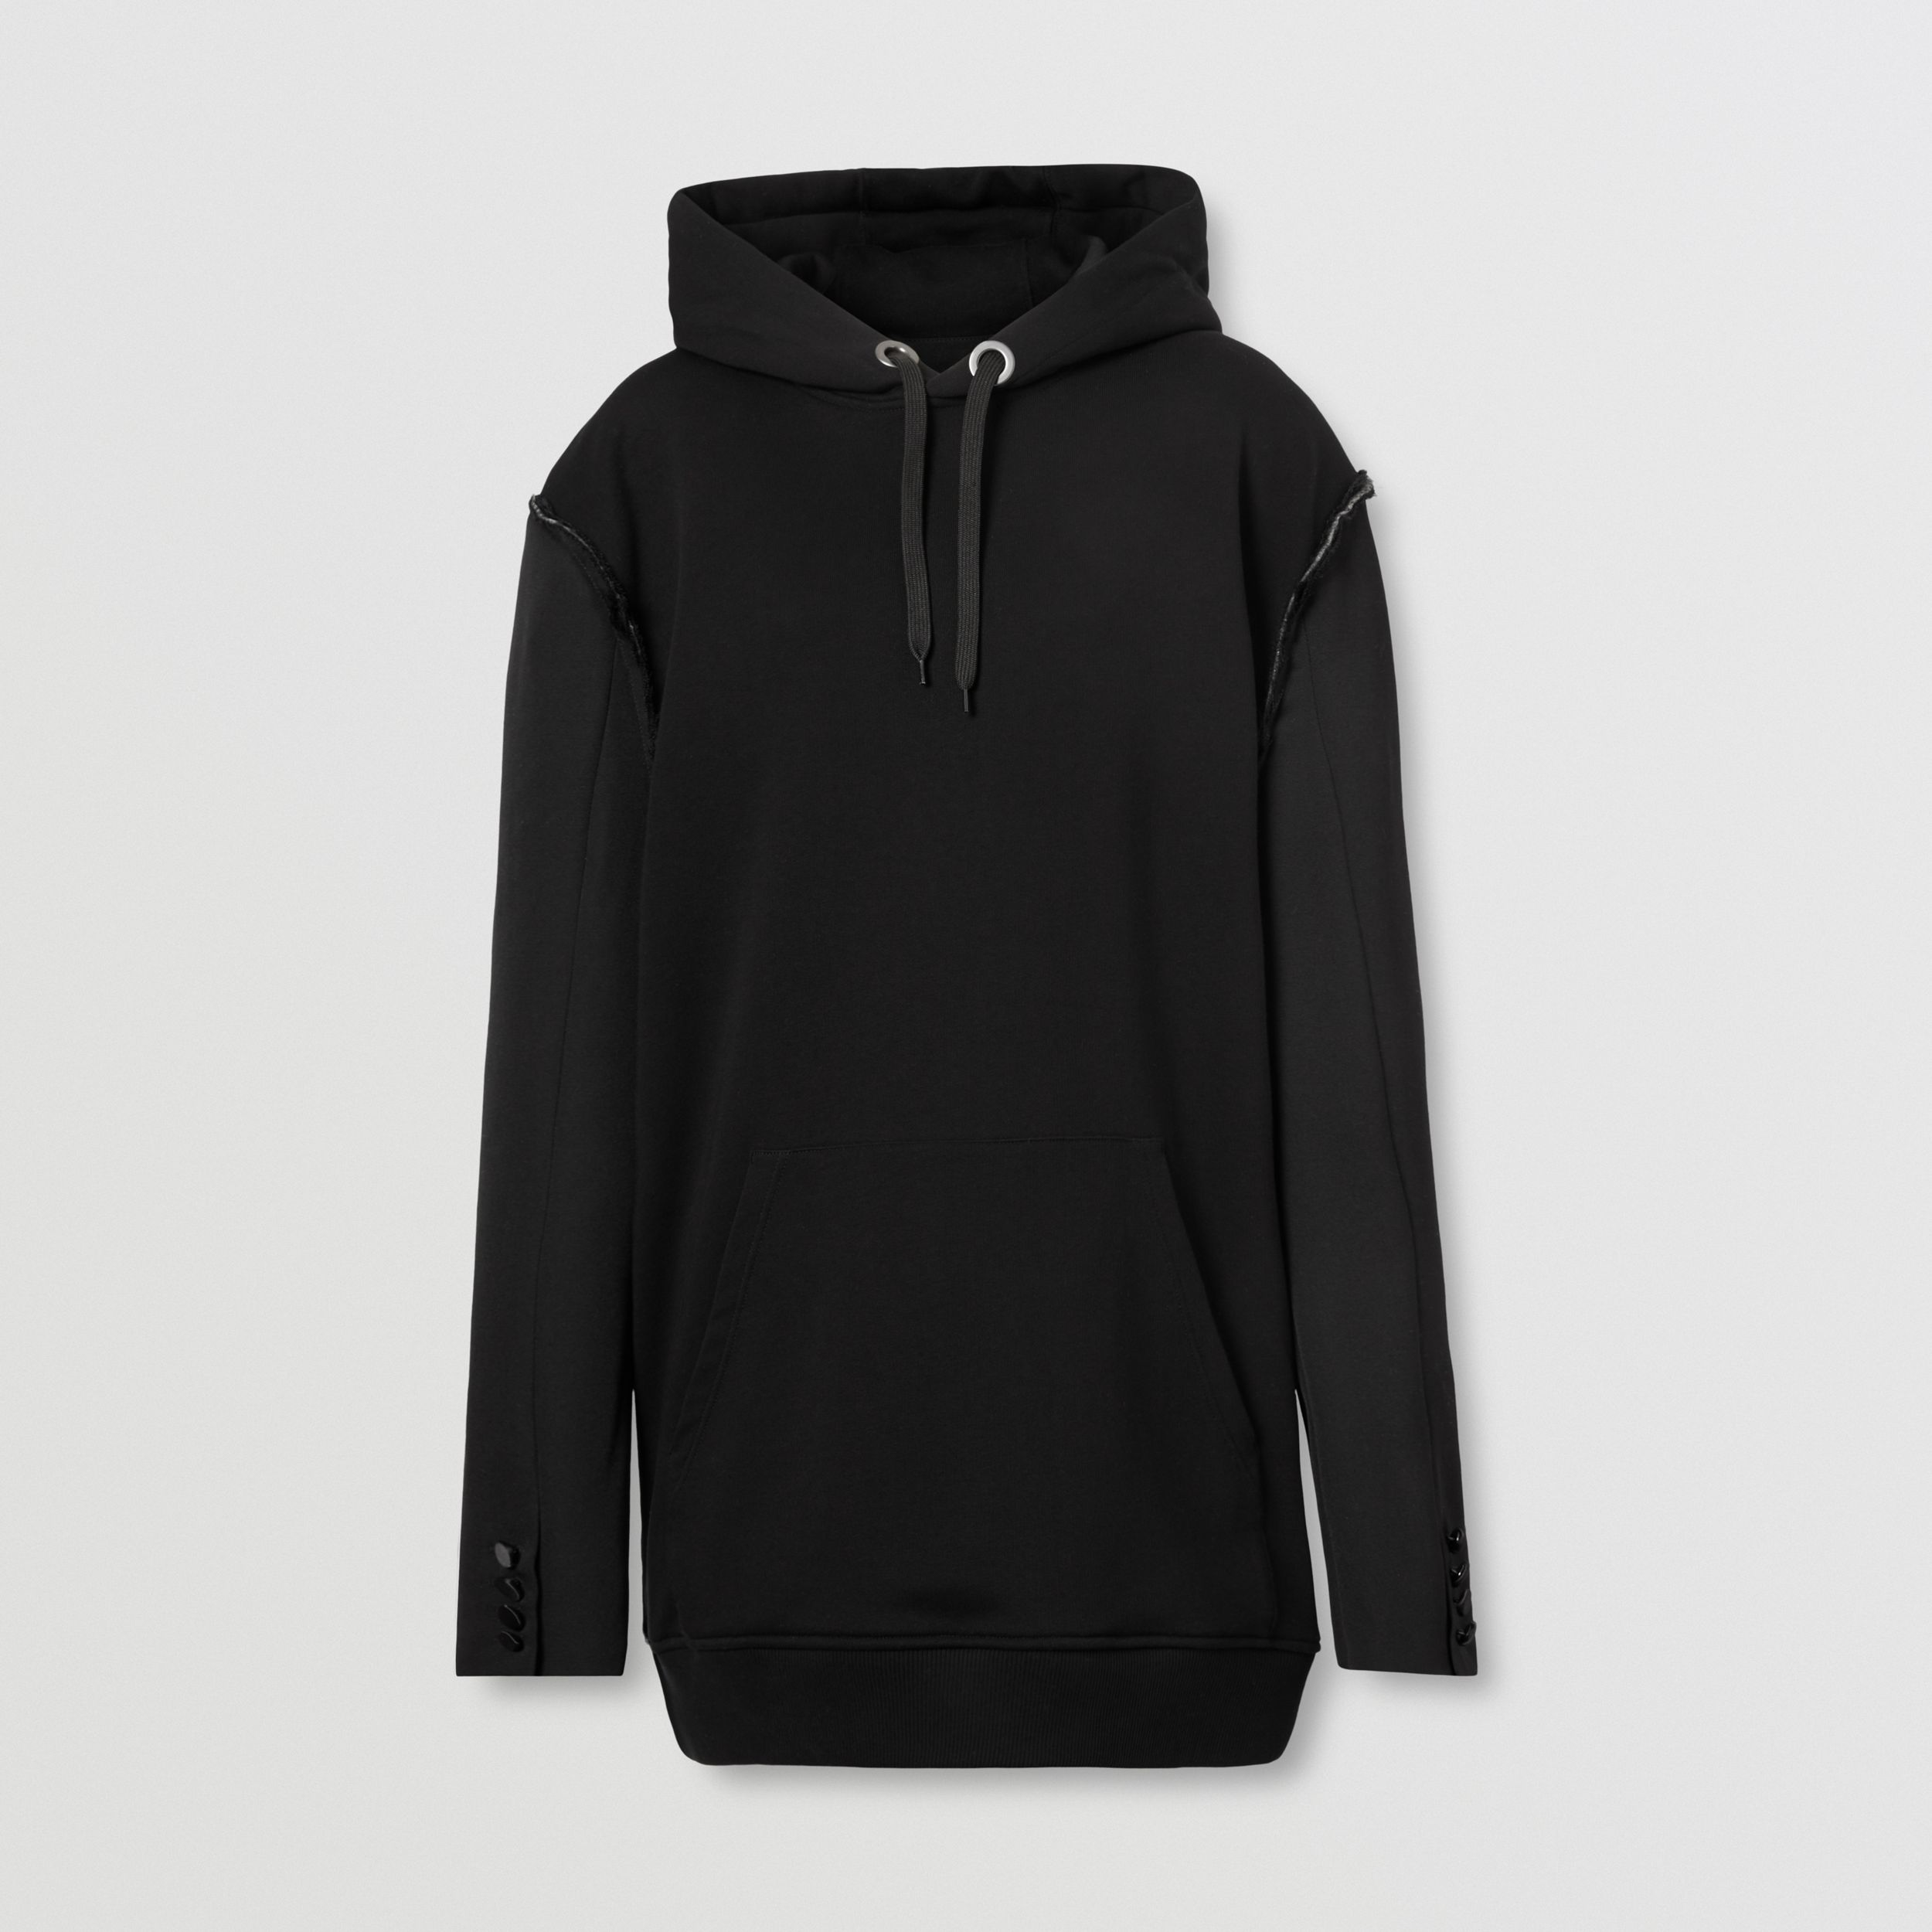 Cotton and Wool Reconstructed Oversized Hoodie in Black - Women | Burberry - 4